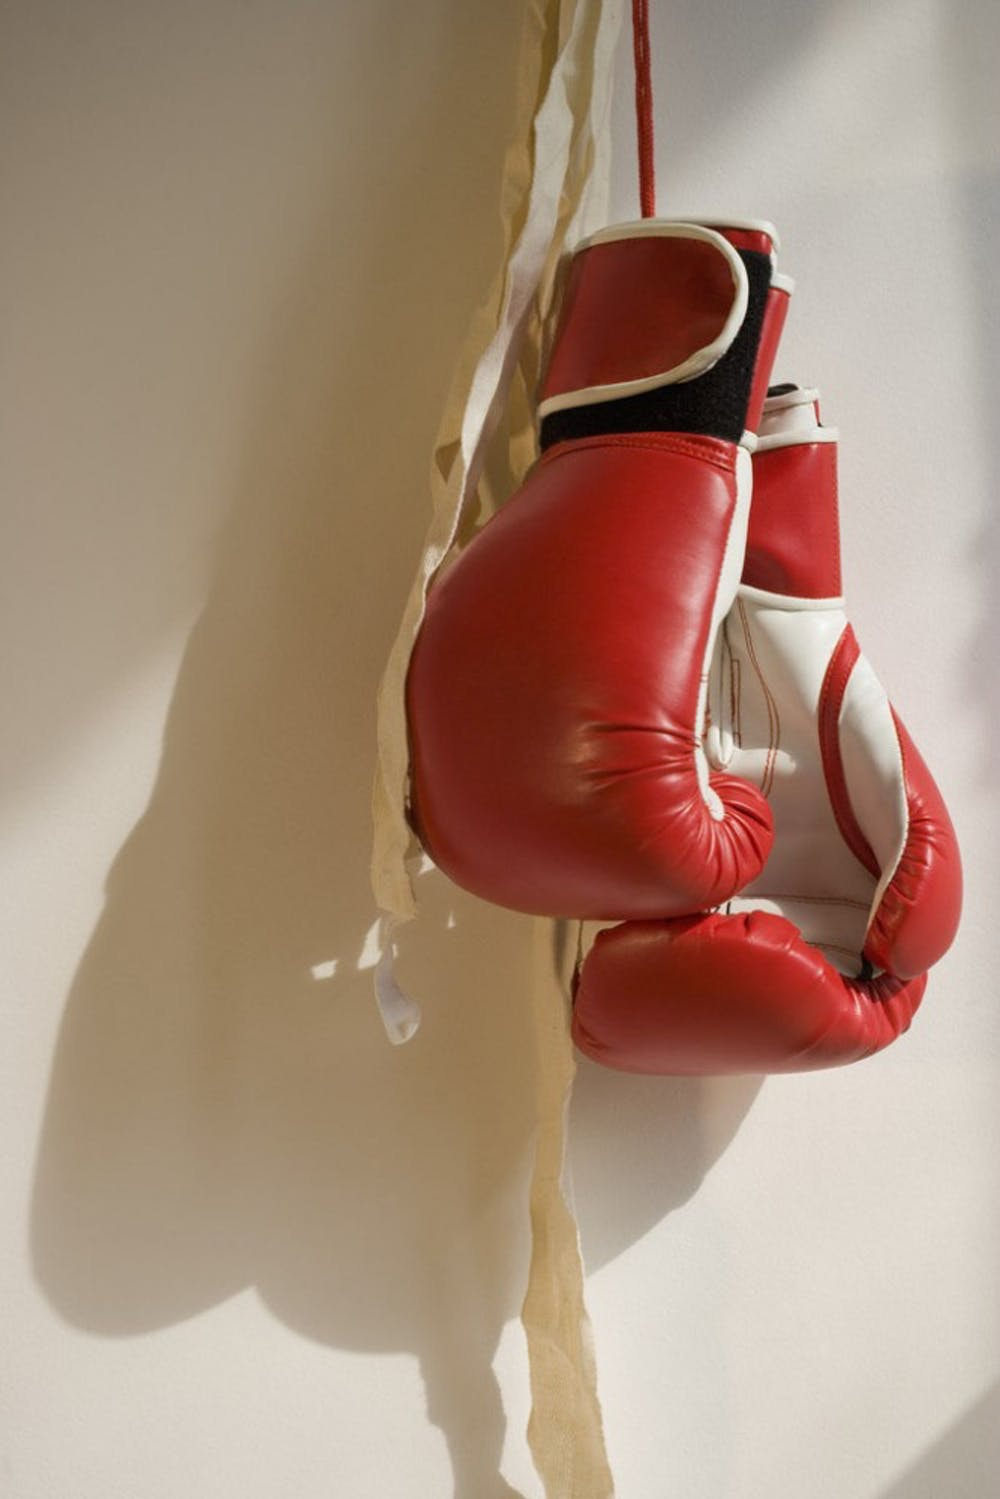 Boxing match coming to SU